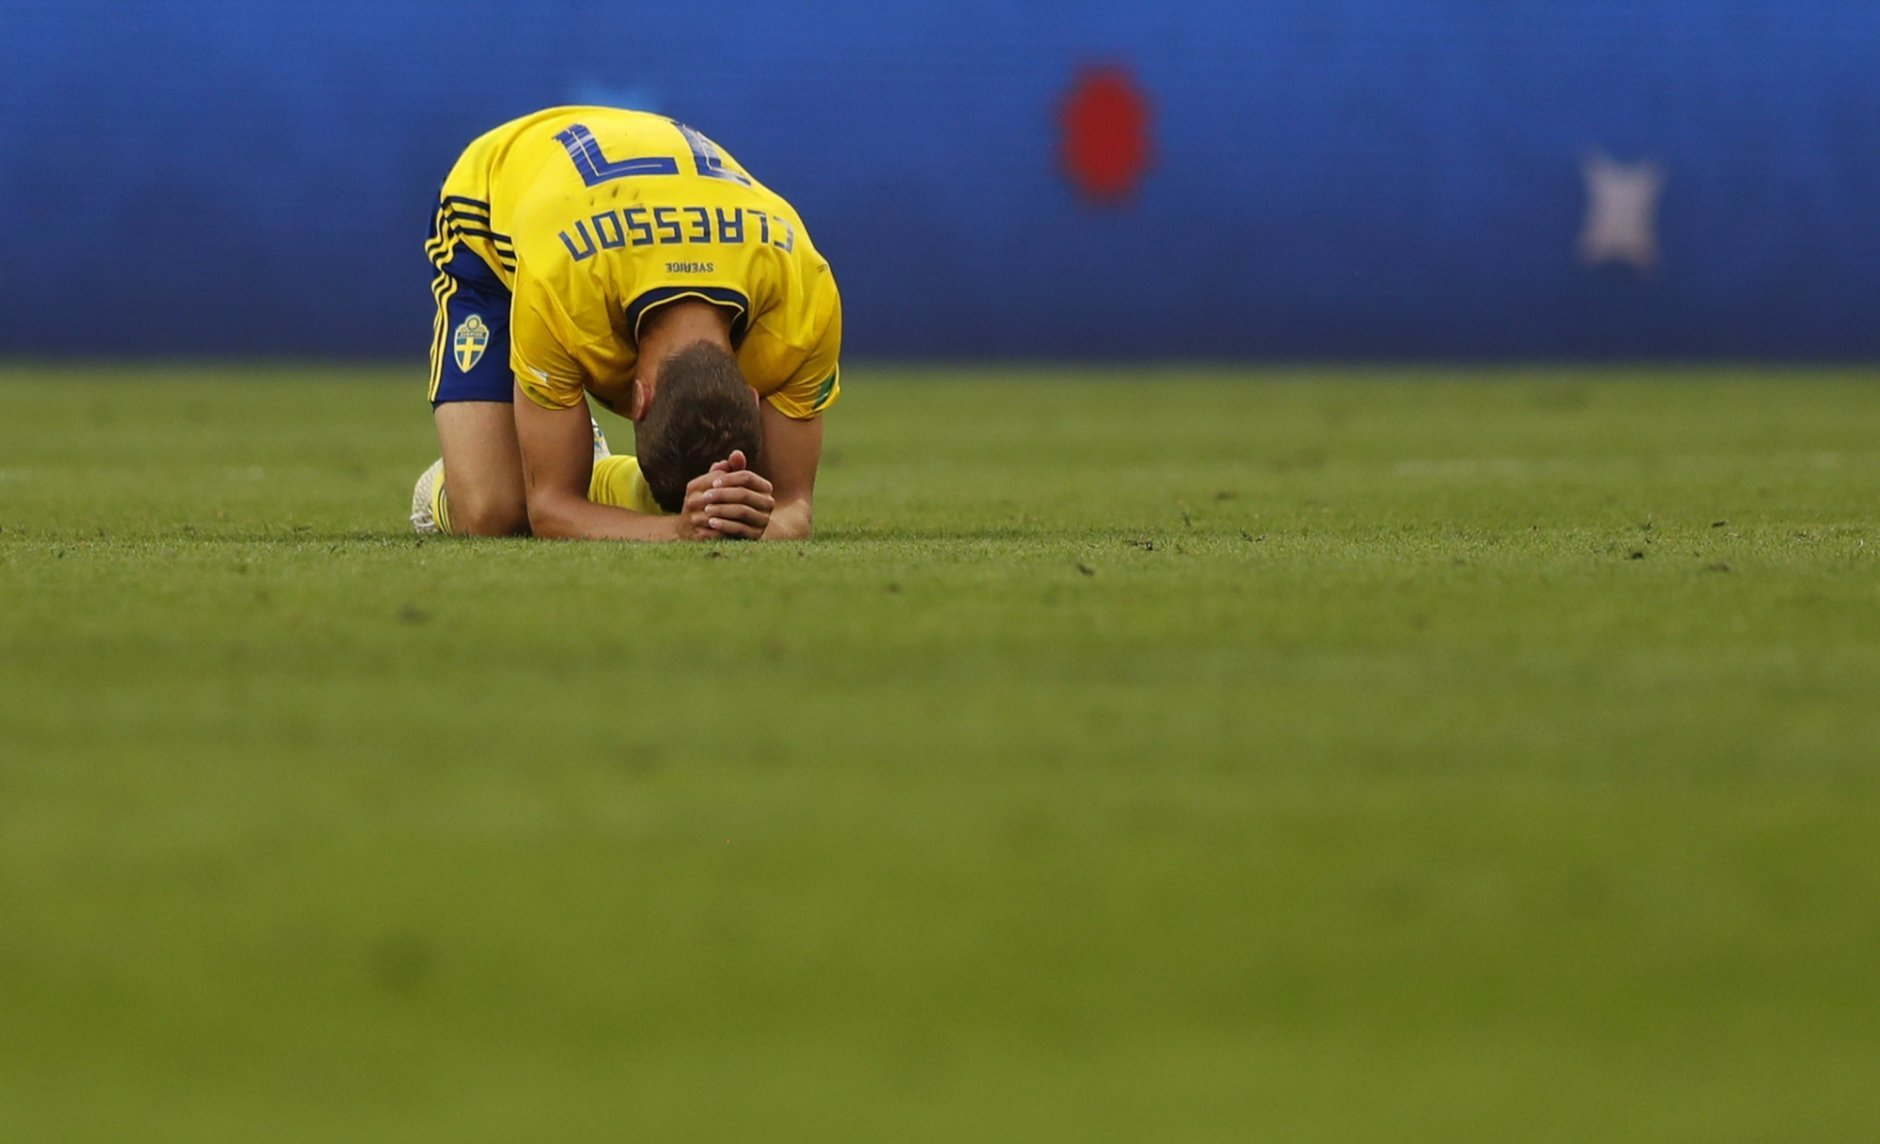 Sweden's Viktor Claesson reacts after the quarterfinal match between Sweden and England at the 2018 soccer World Cup in the Samara Arena, in Samara, Russia, Saturday, July 7, 2018. (AP Photo/Frank Augstein)